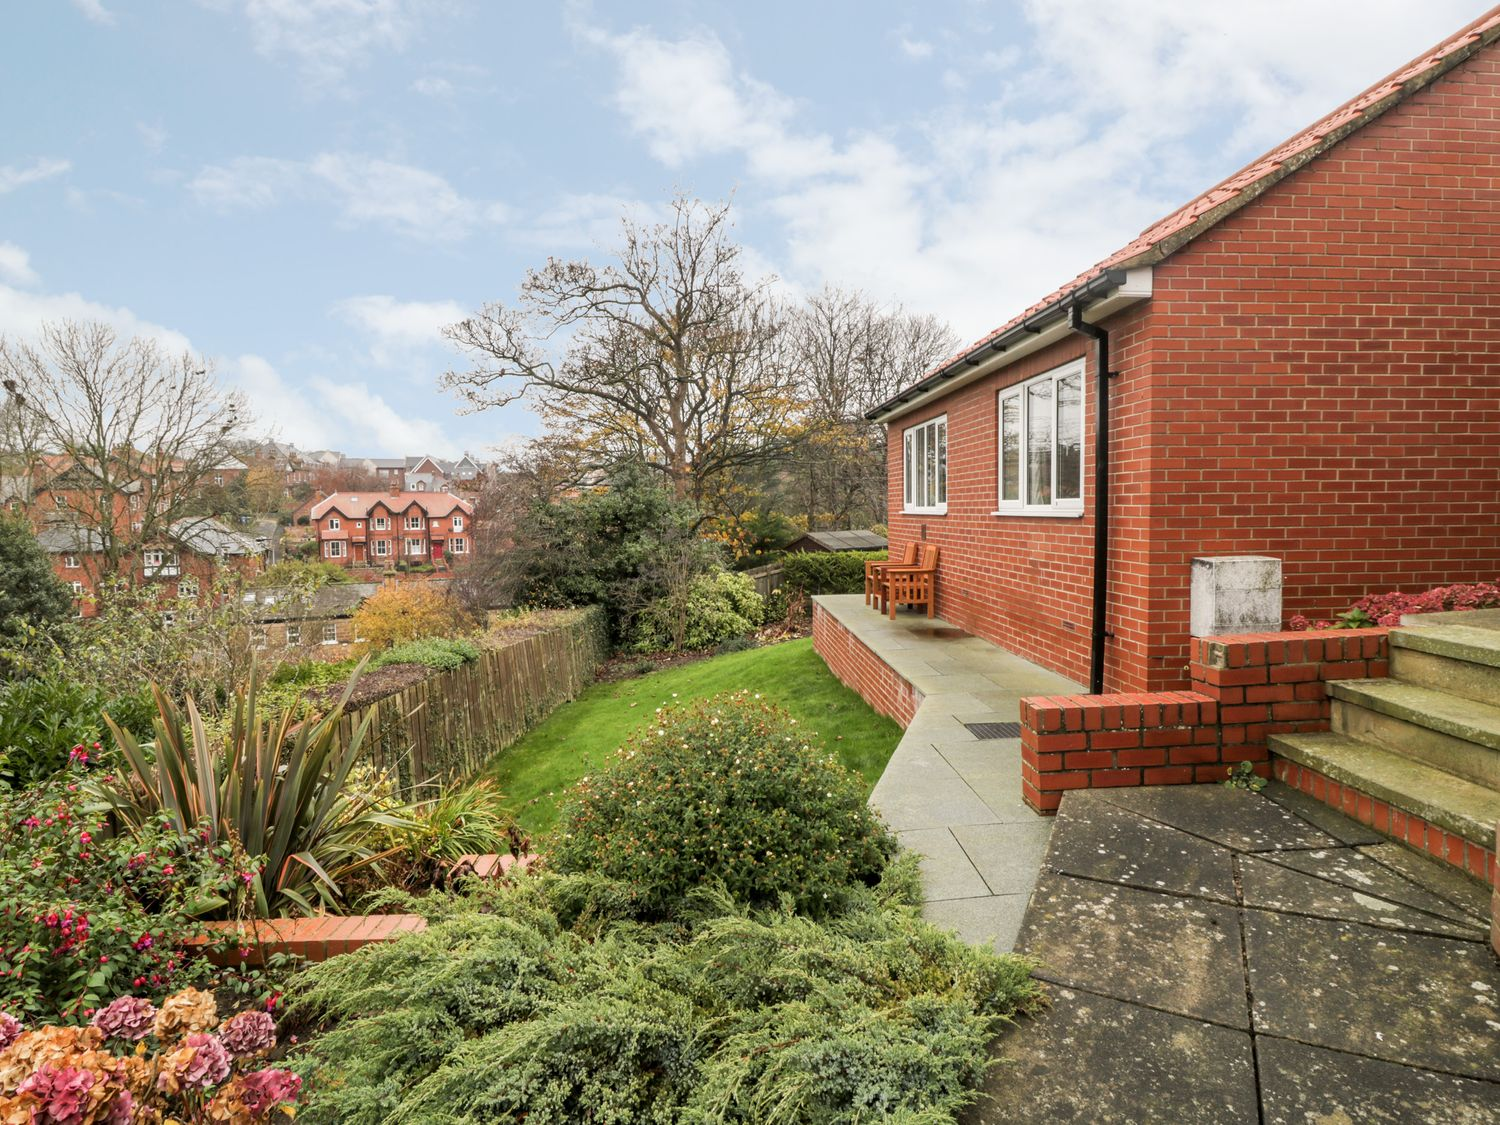 1A Prospect Hill - Whitby & North Yorkshire - 1027233 - photo 1